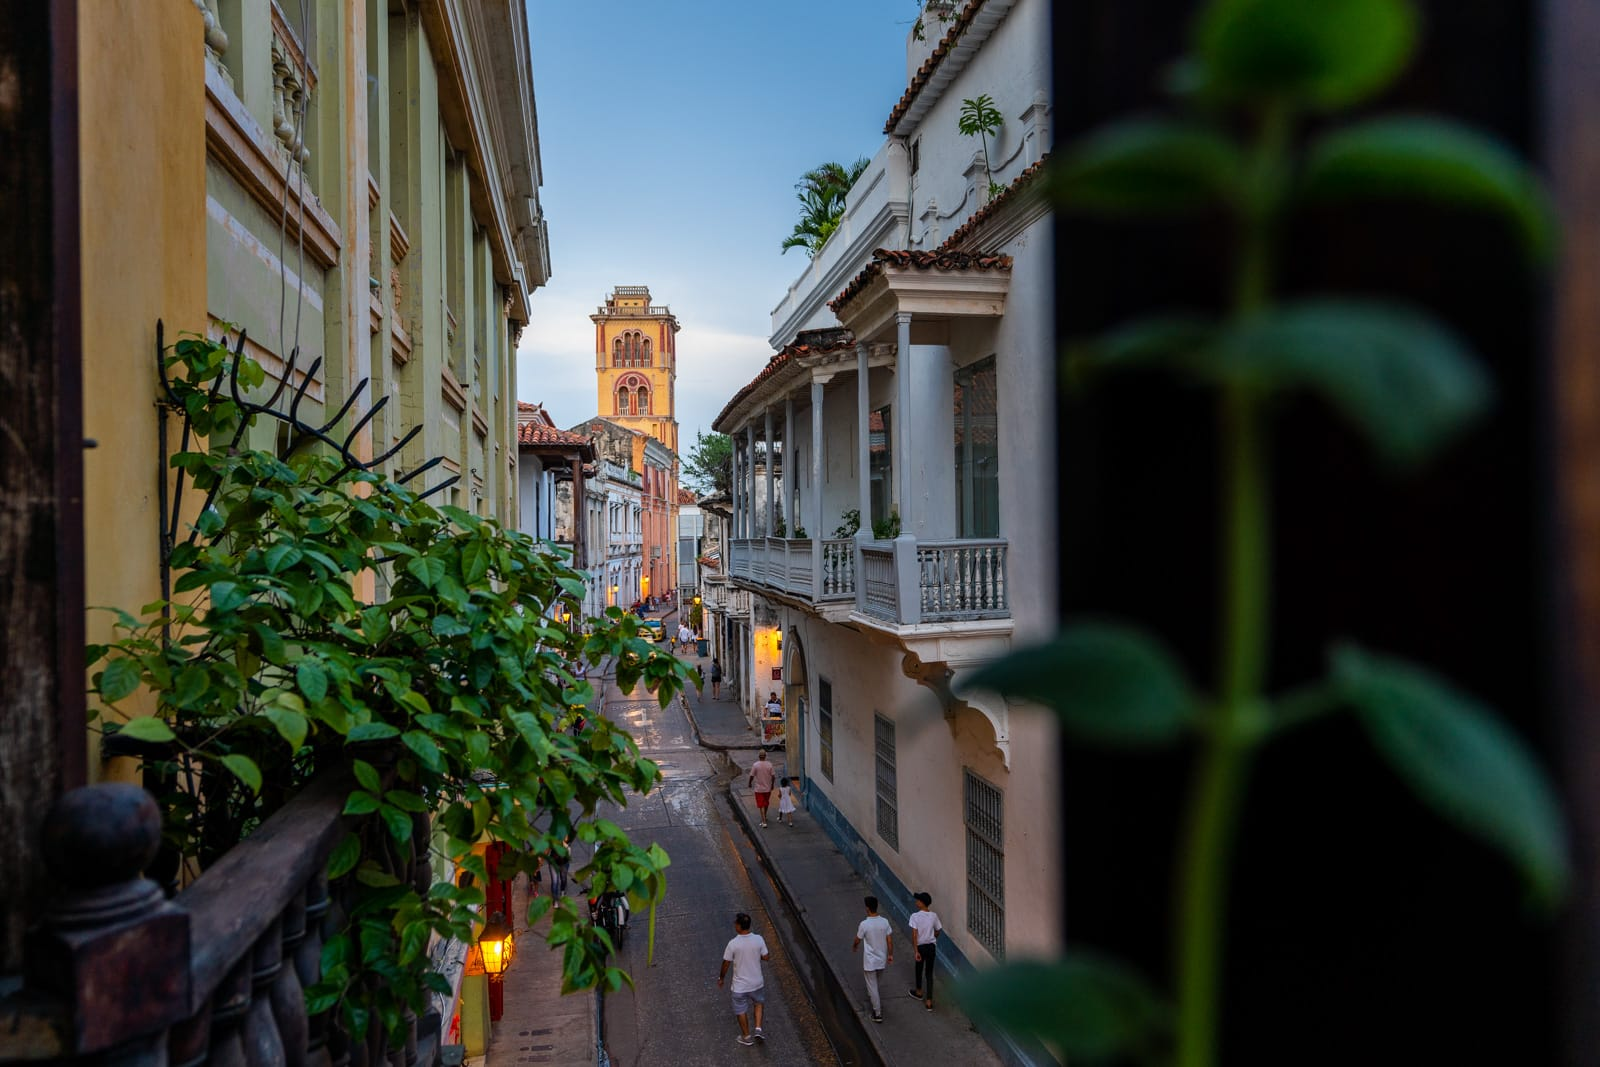 Cafes with wifi for digital nomads in Cartagena, Colombia - Cartagena at sunset - Lost With Purpose travel blog